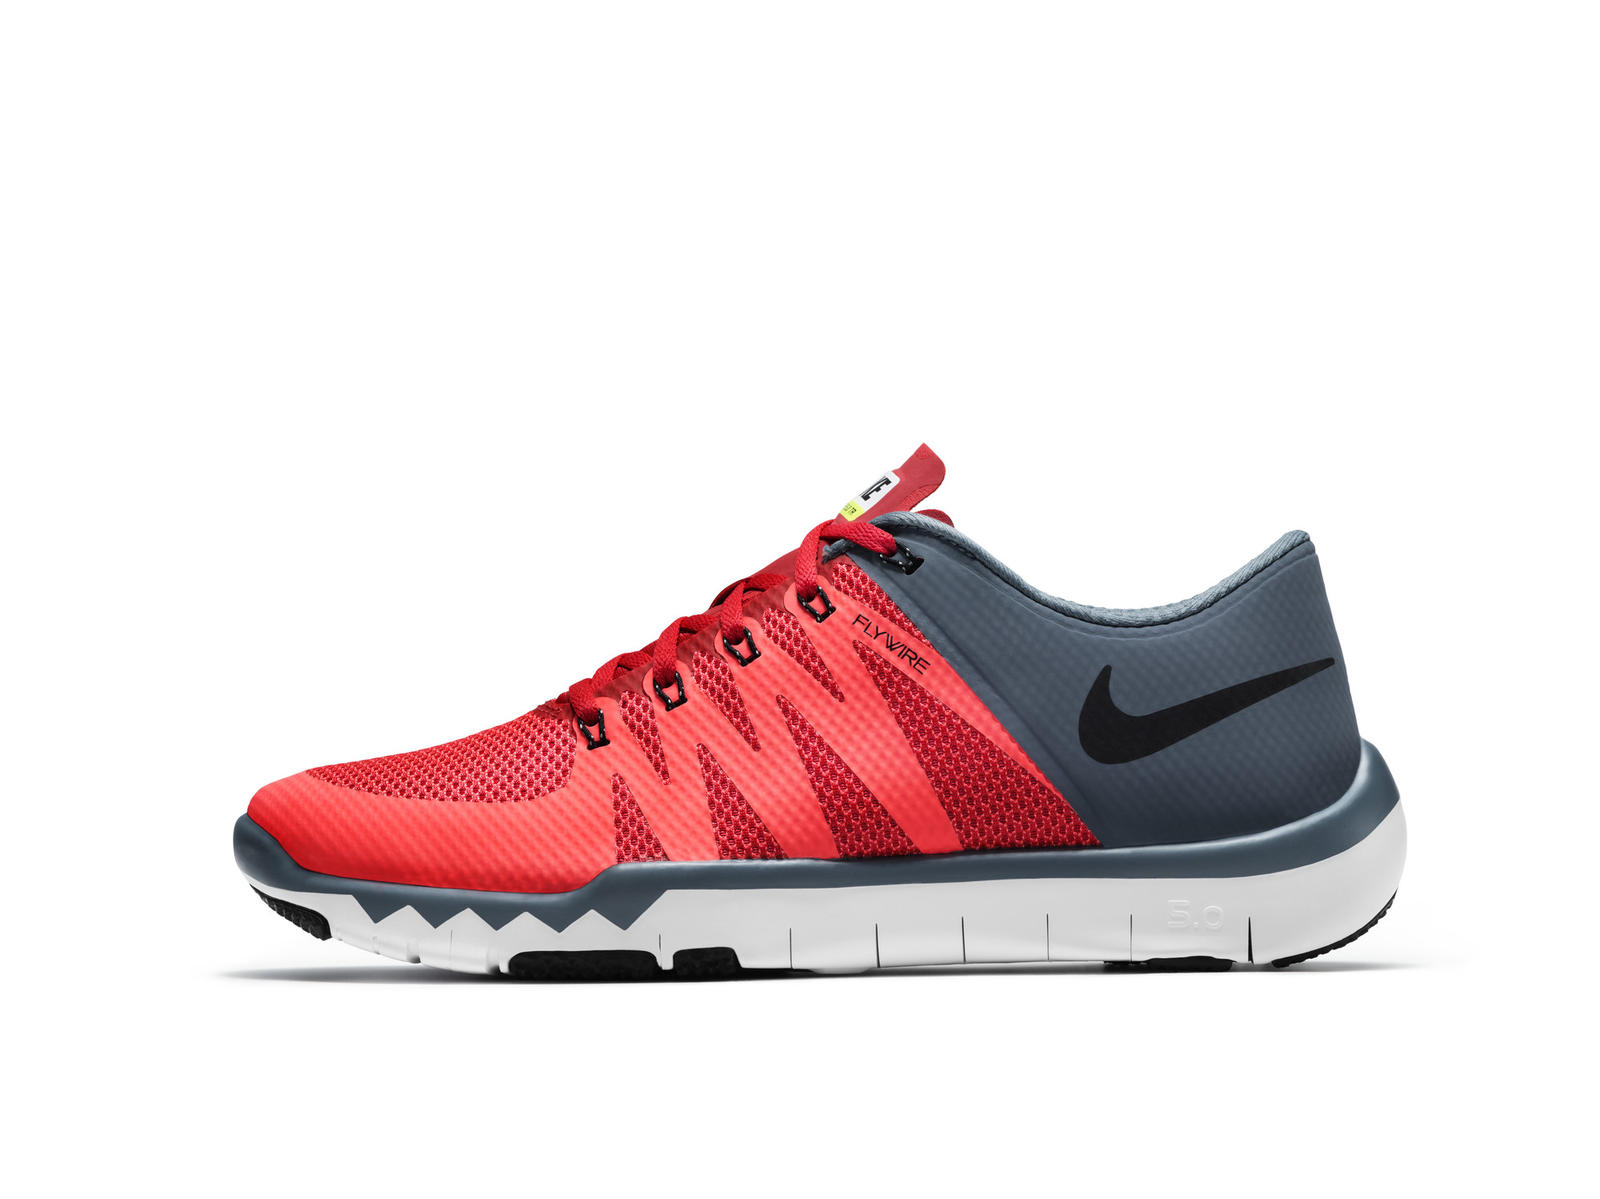 nike flywire 5.0